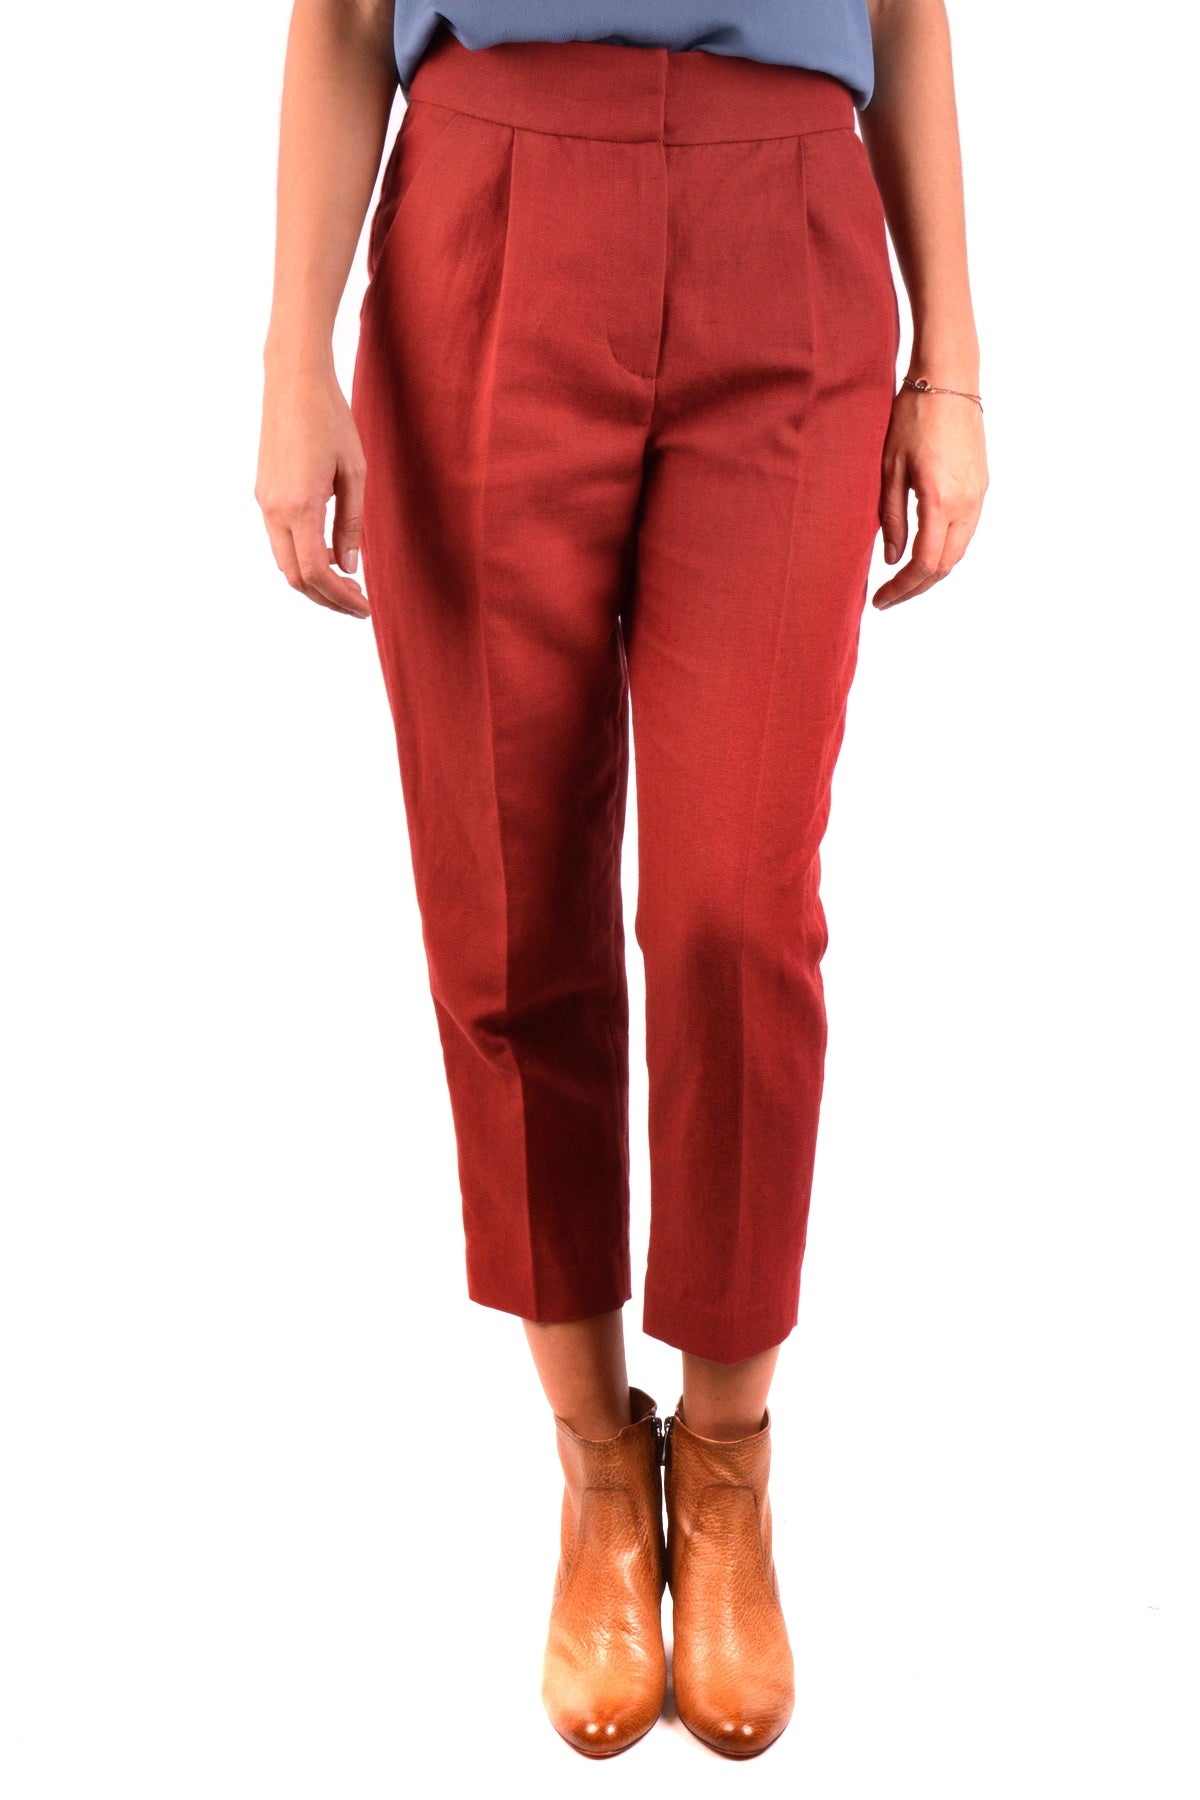 Trousers Brunello Cucinelli-Trousers - WOMAN-38-Product Details Season: Spring / SummerTerms: New With LabelMain Color: RedGender: WomanMade In: ItalyManufacturer Part Number: Mf553P6394Size: ItYear: 2018Clothing Type: TrousersComposition: Cotton 51%, Lyocell 49%-Keyomi-Sook